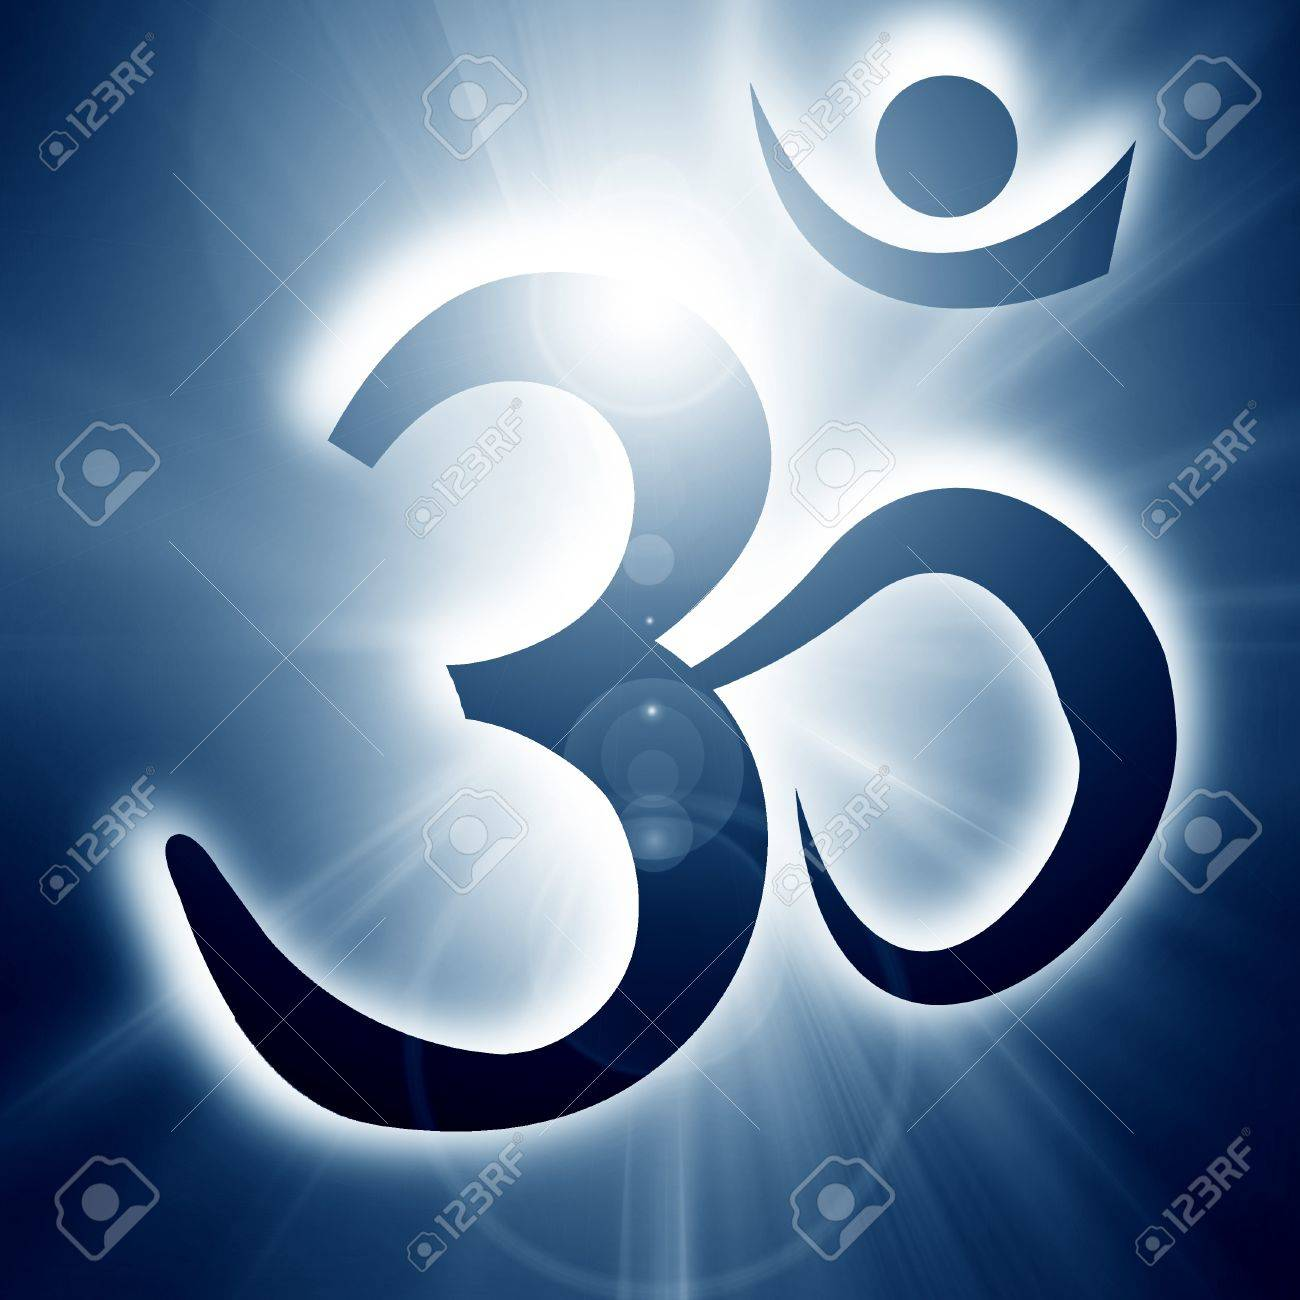 Om symbol on a soft glowing background with beams Stock Photo - 15612655